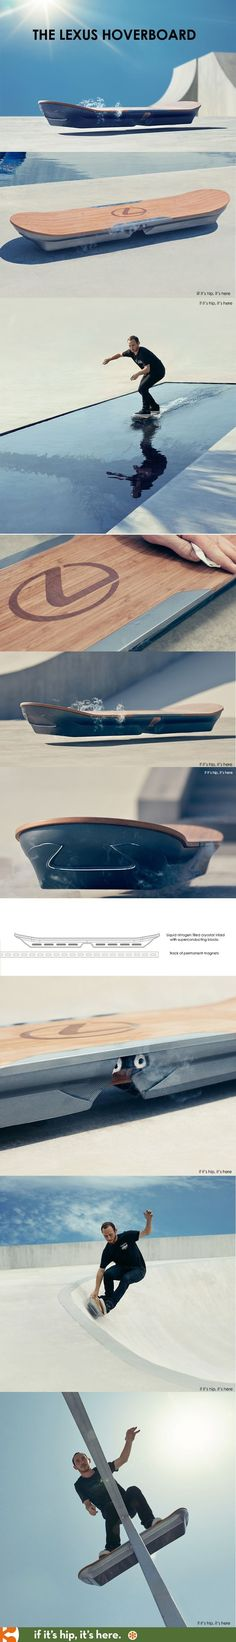 is Content Filtering? The Lexus Hoverboard, they may have had metal under Hill Valley. They just never told you.The Lexus Hoverboard, they may have had metal under Hill Valley. They just never told you. Futuristic Technology, Cool Technology, Technology Gadgets, Medical Technology, Energy Technology, Gadgets And Gizmos, Tech Gadgets, Travel Gadgets, Tech Toys